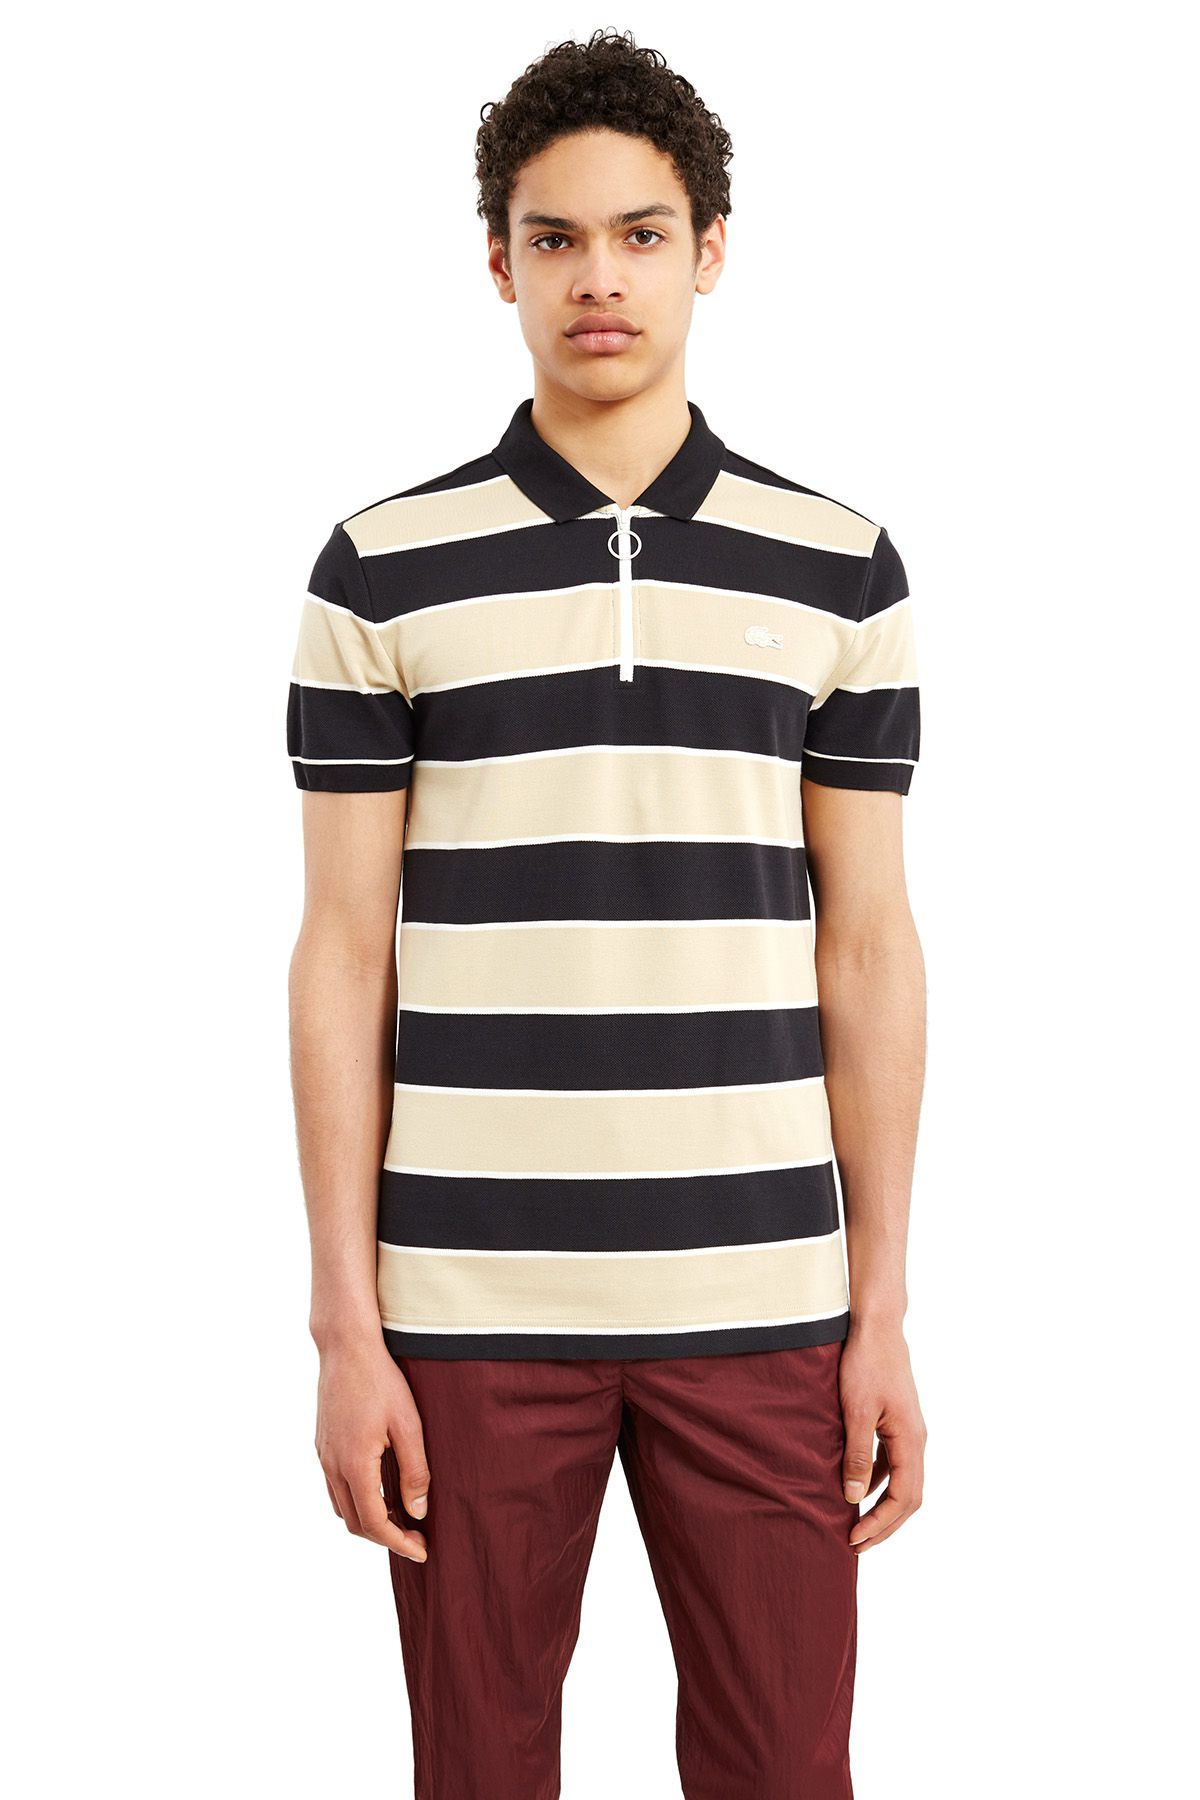 Lacoste x Opening Ceremony striped polo